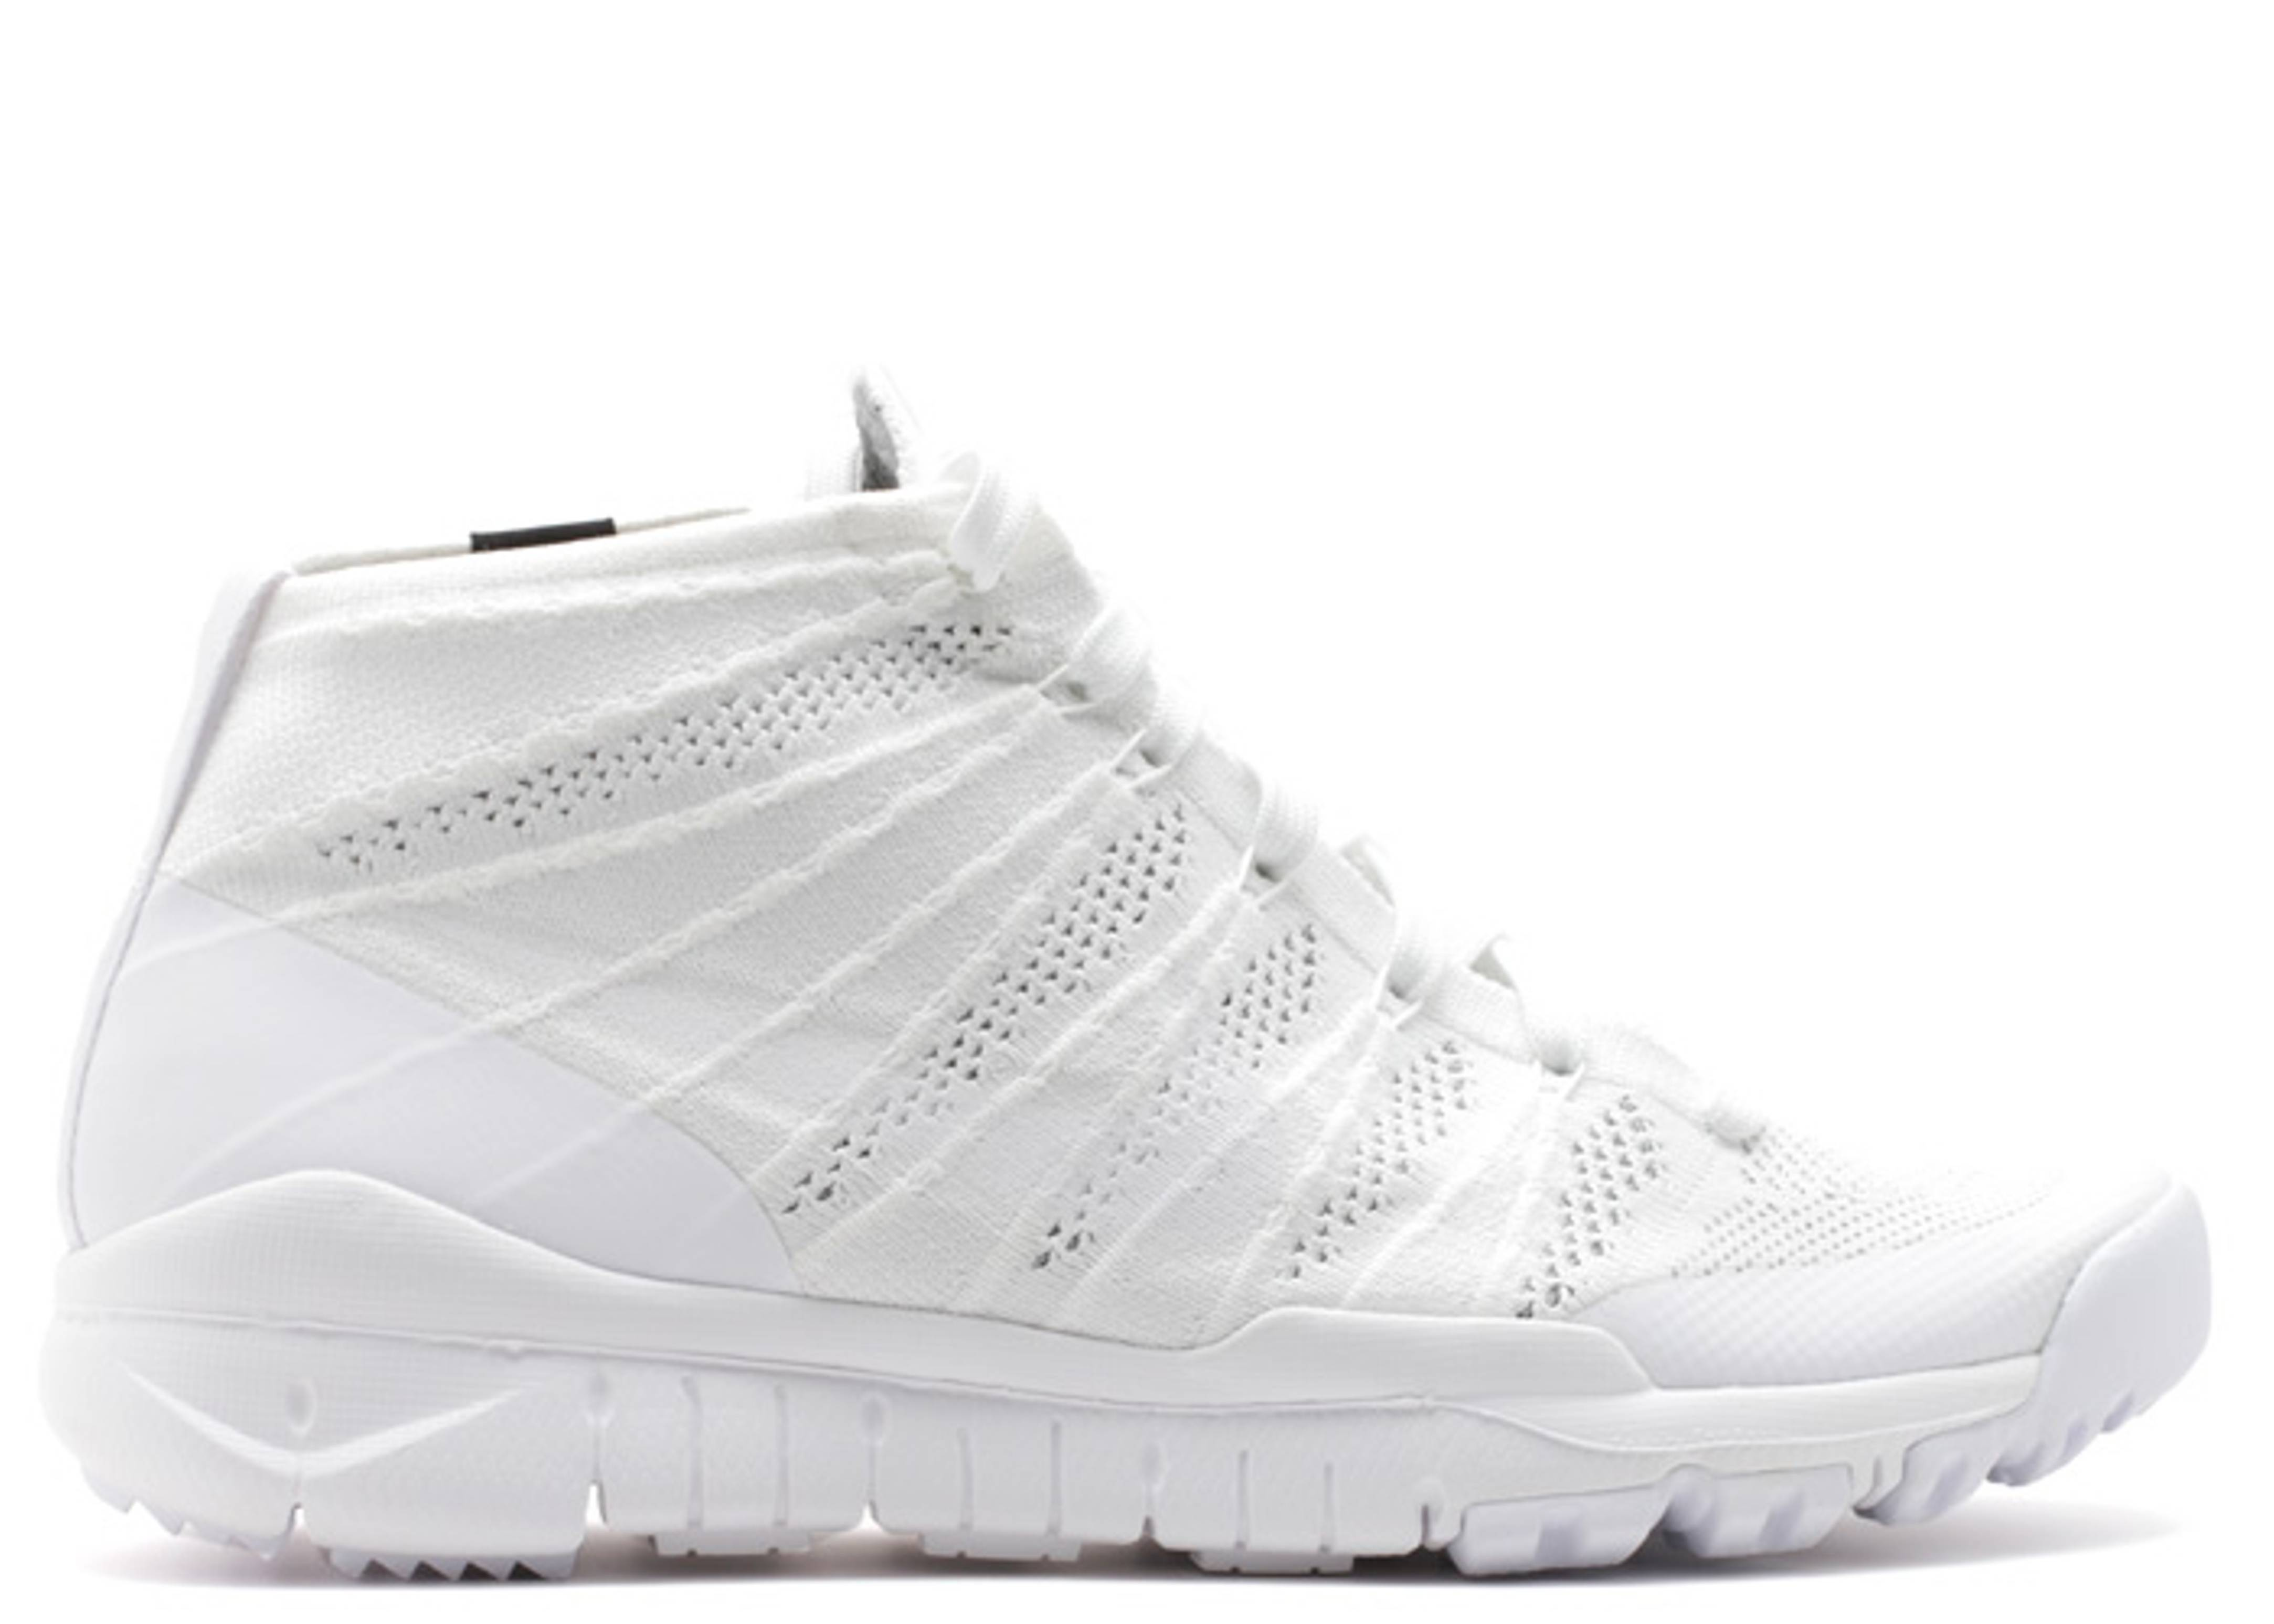 flyknit trainer chukka sp - do not use